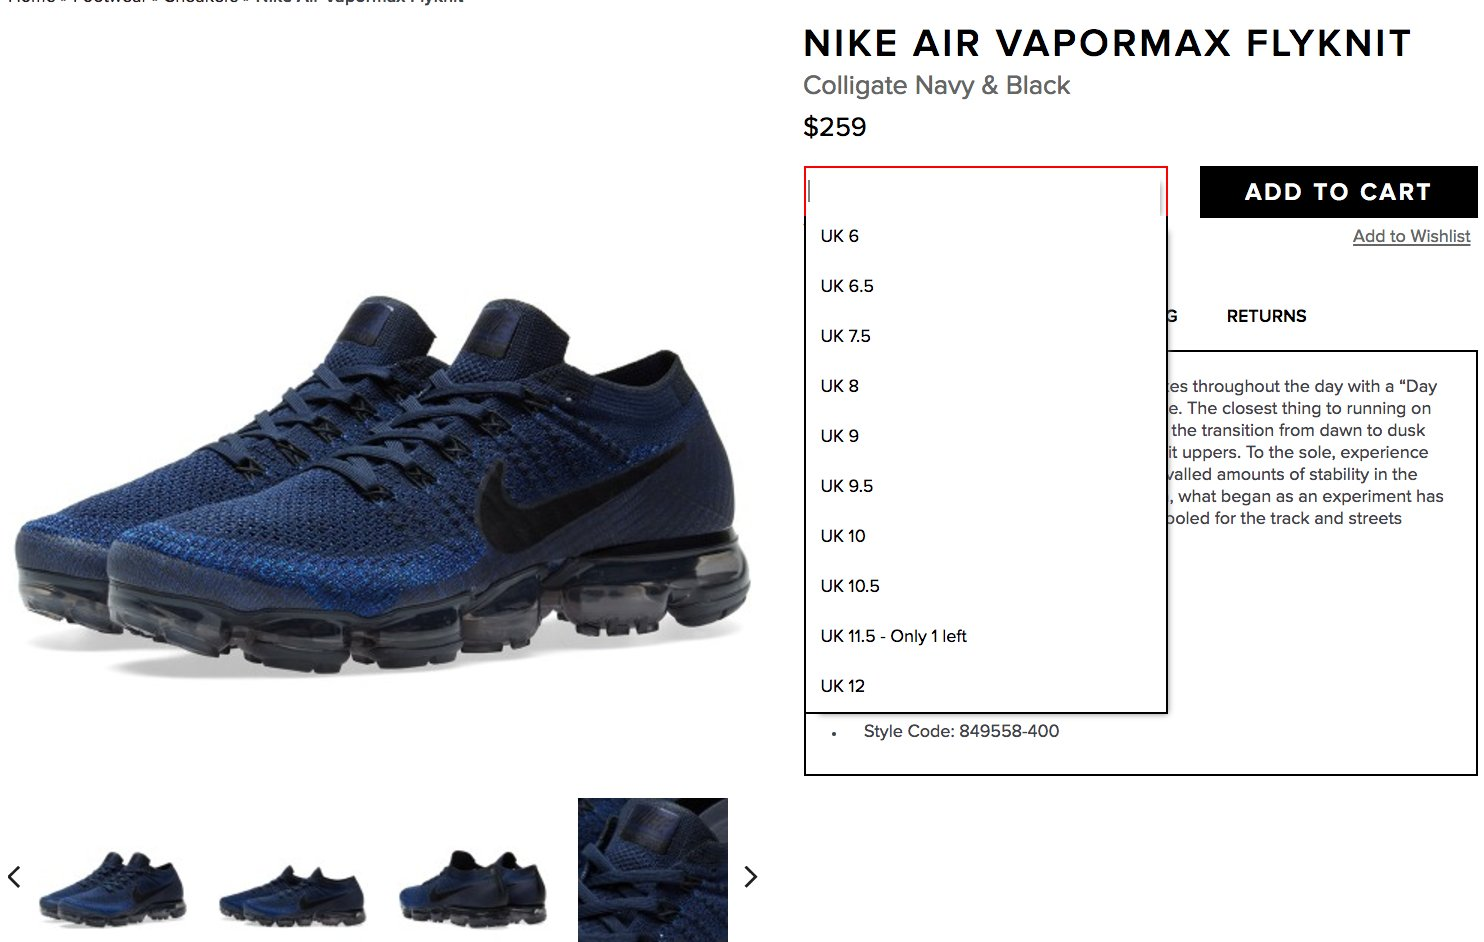 af09b56134e ... Nike Air VaporMax Flyknit SOLE LINKS on Twitter  ...